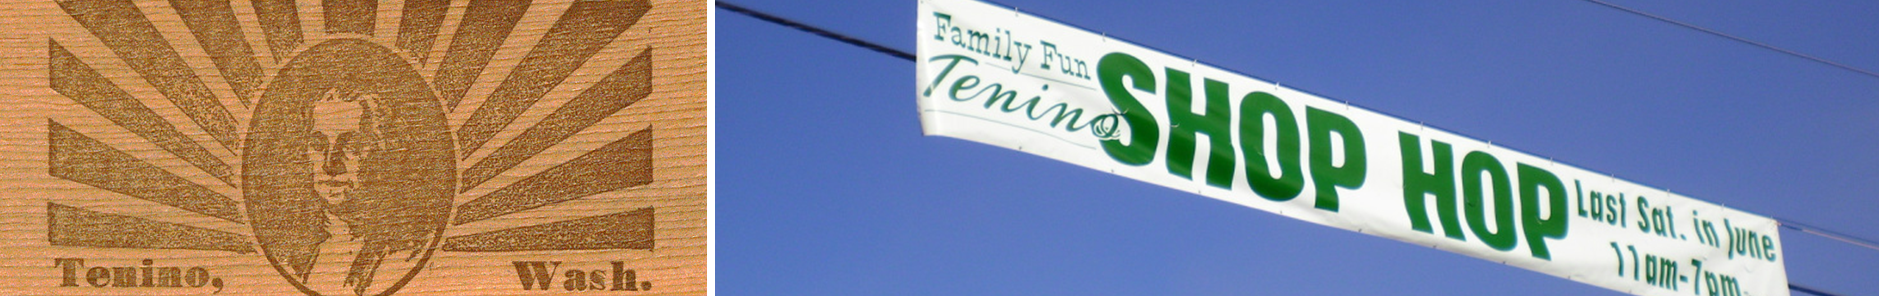 Tenino Sign | Family Fun Day